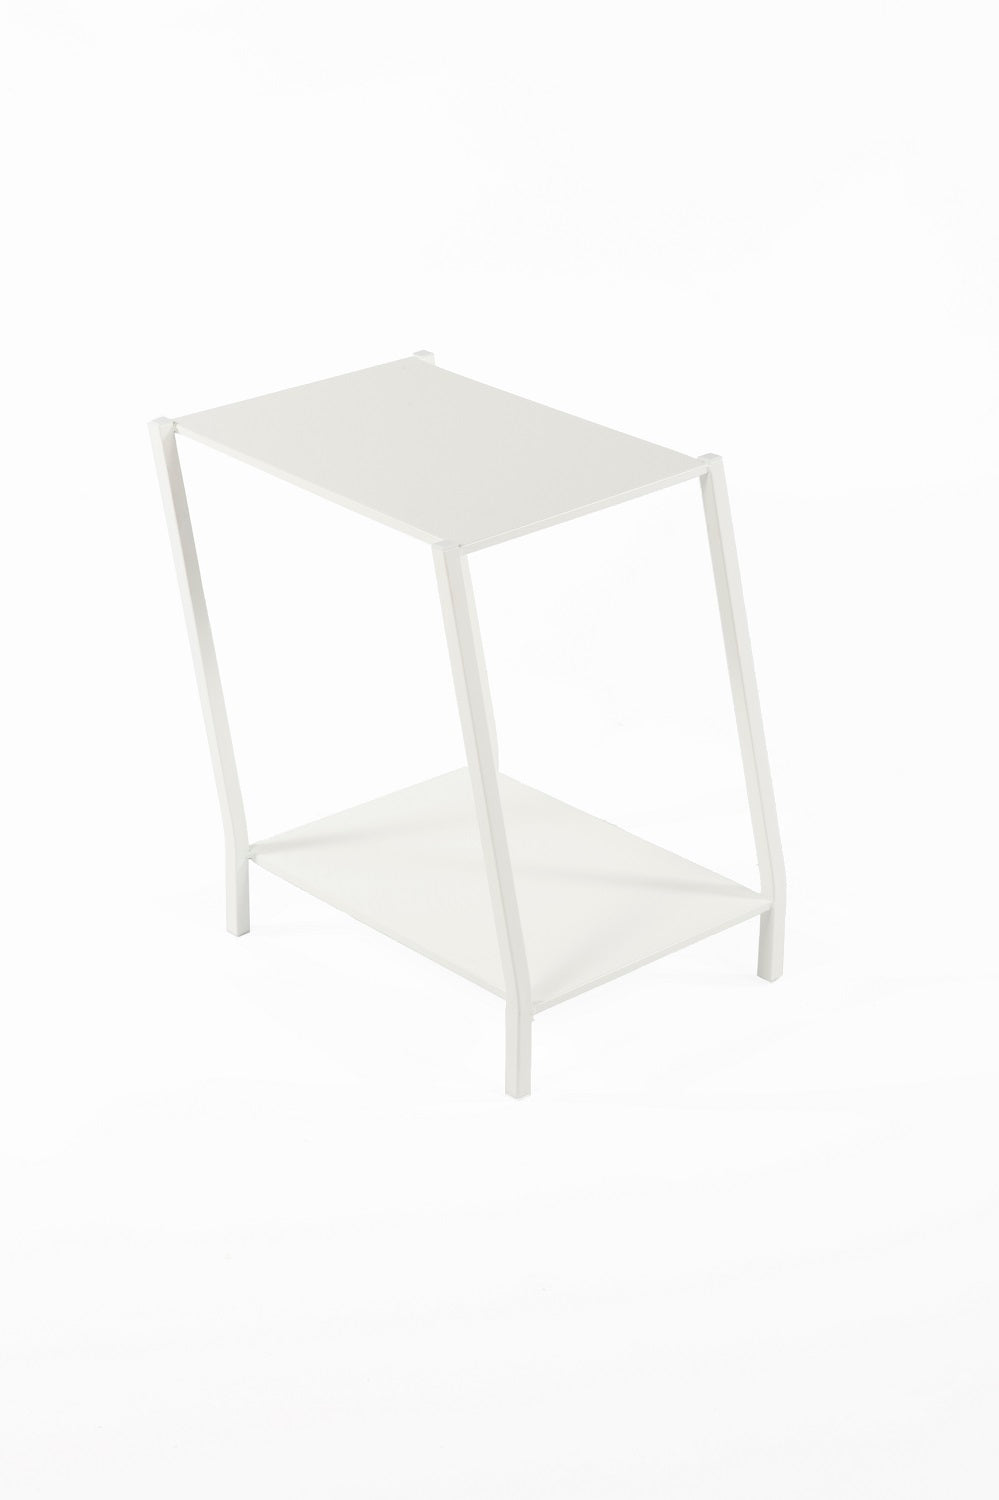 The Wiggle End Table [FT6023WHT] 2